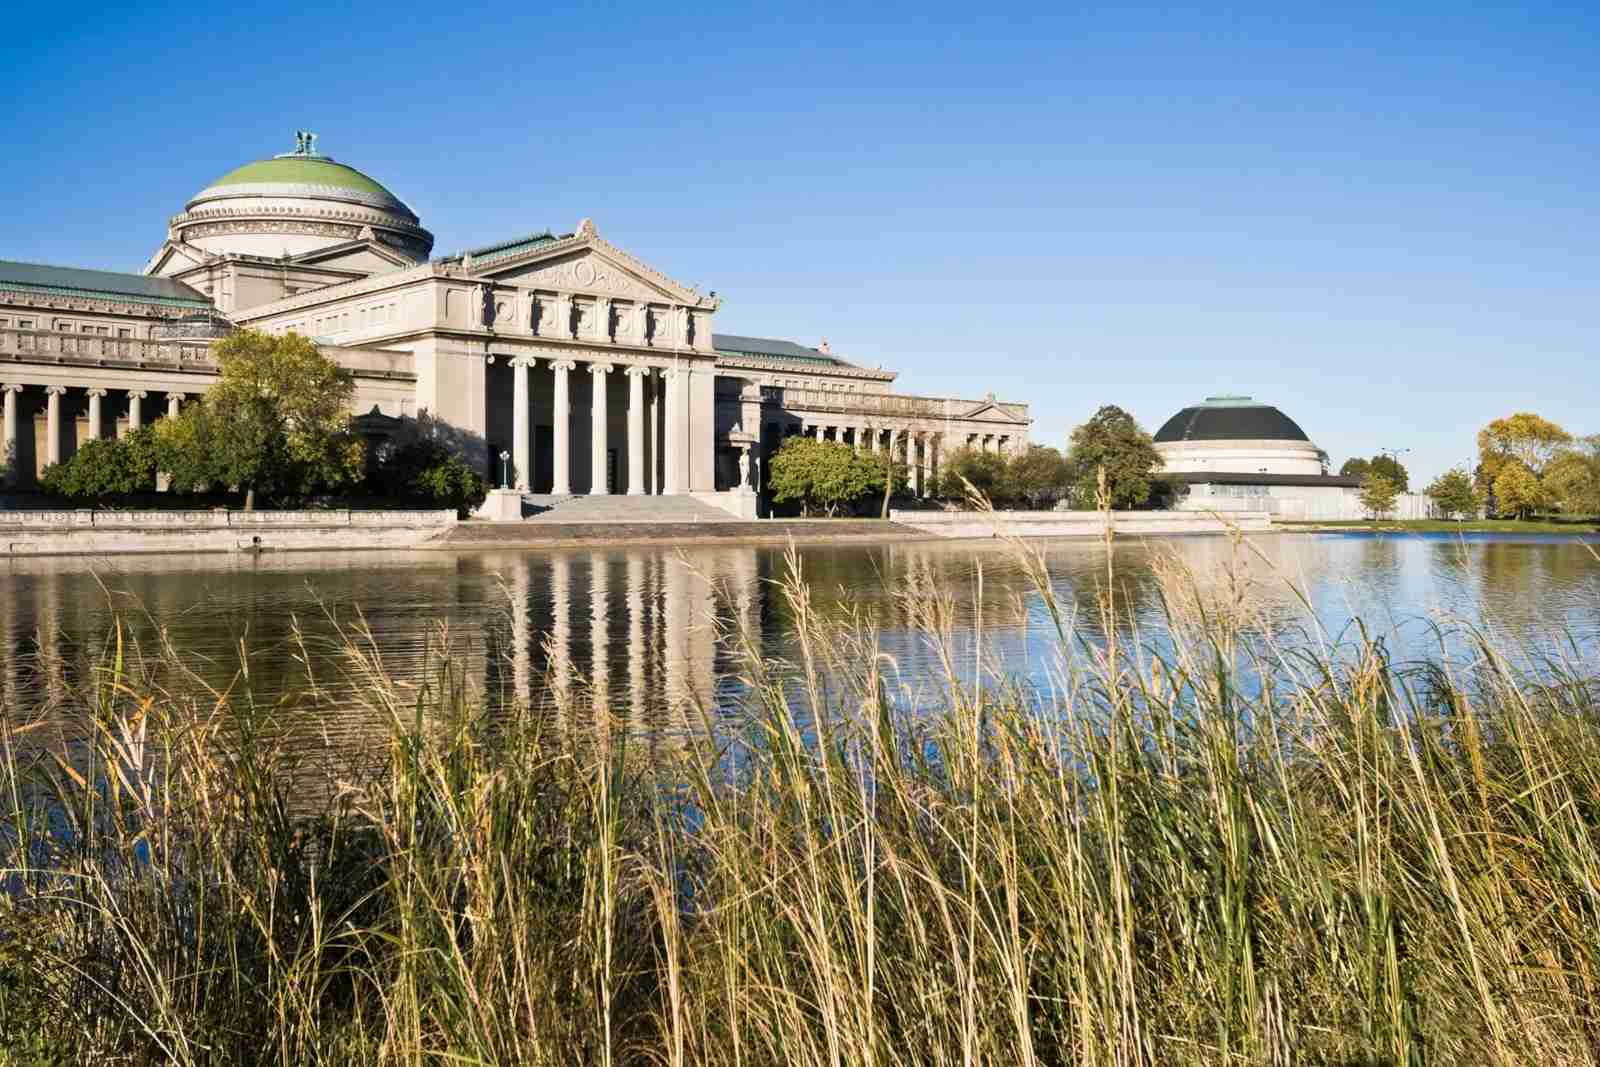 The Museum of Science and Industry, Chicago. (Photo by Benkrut / Getty Images)